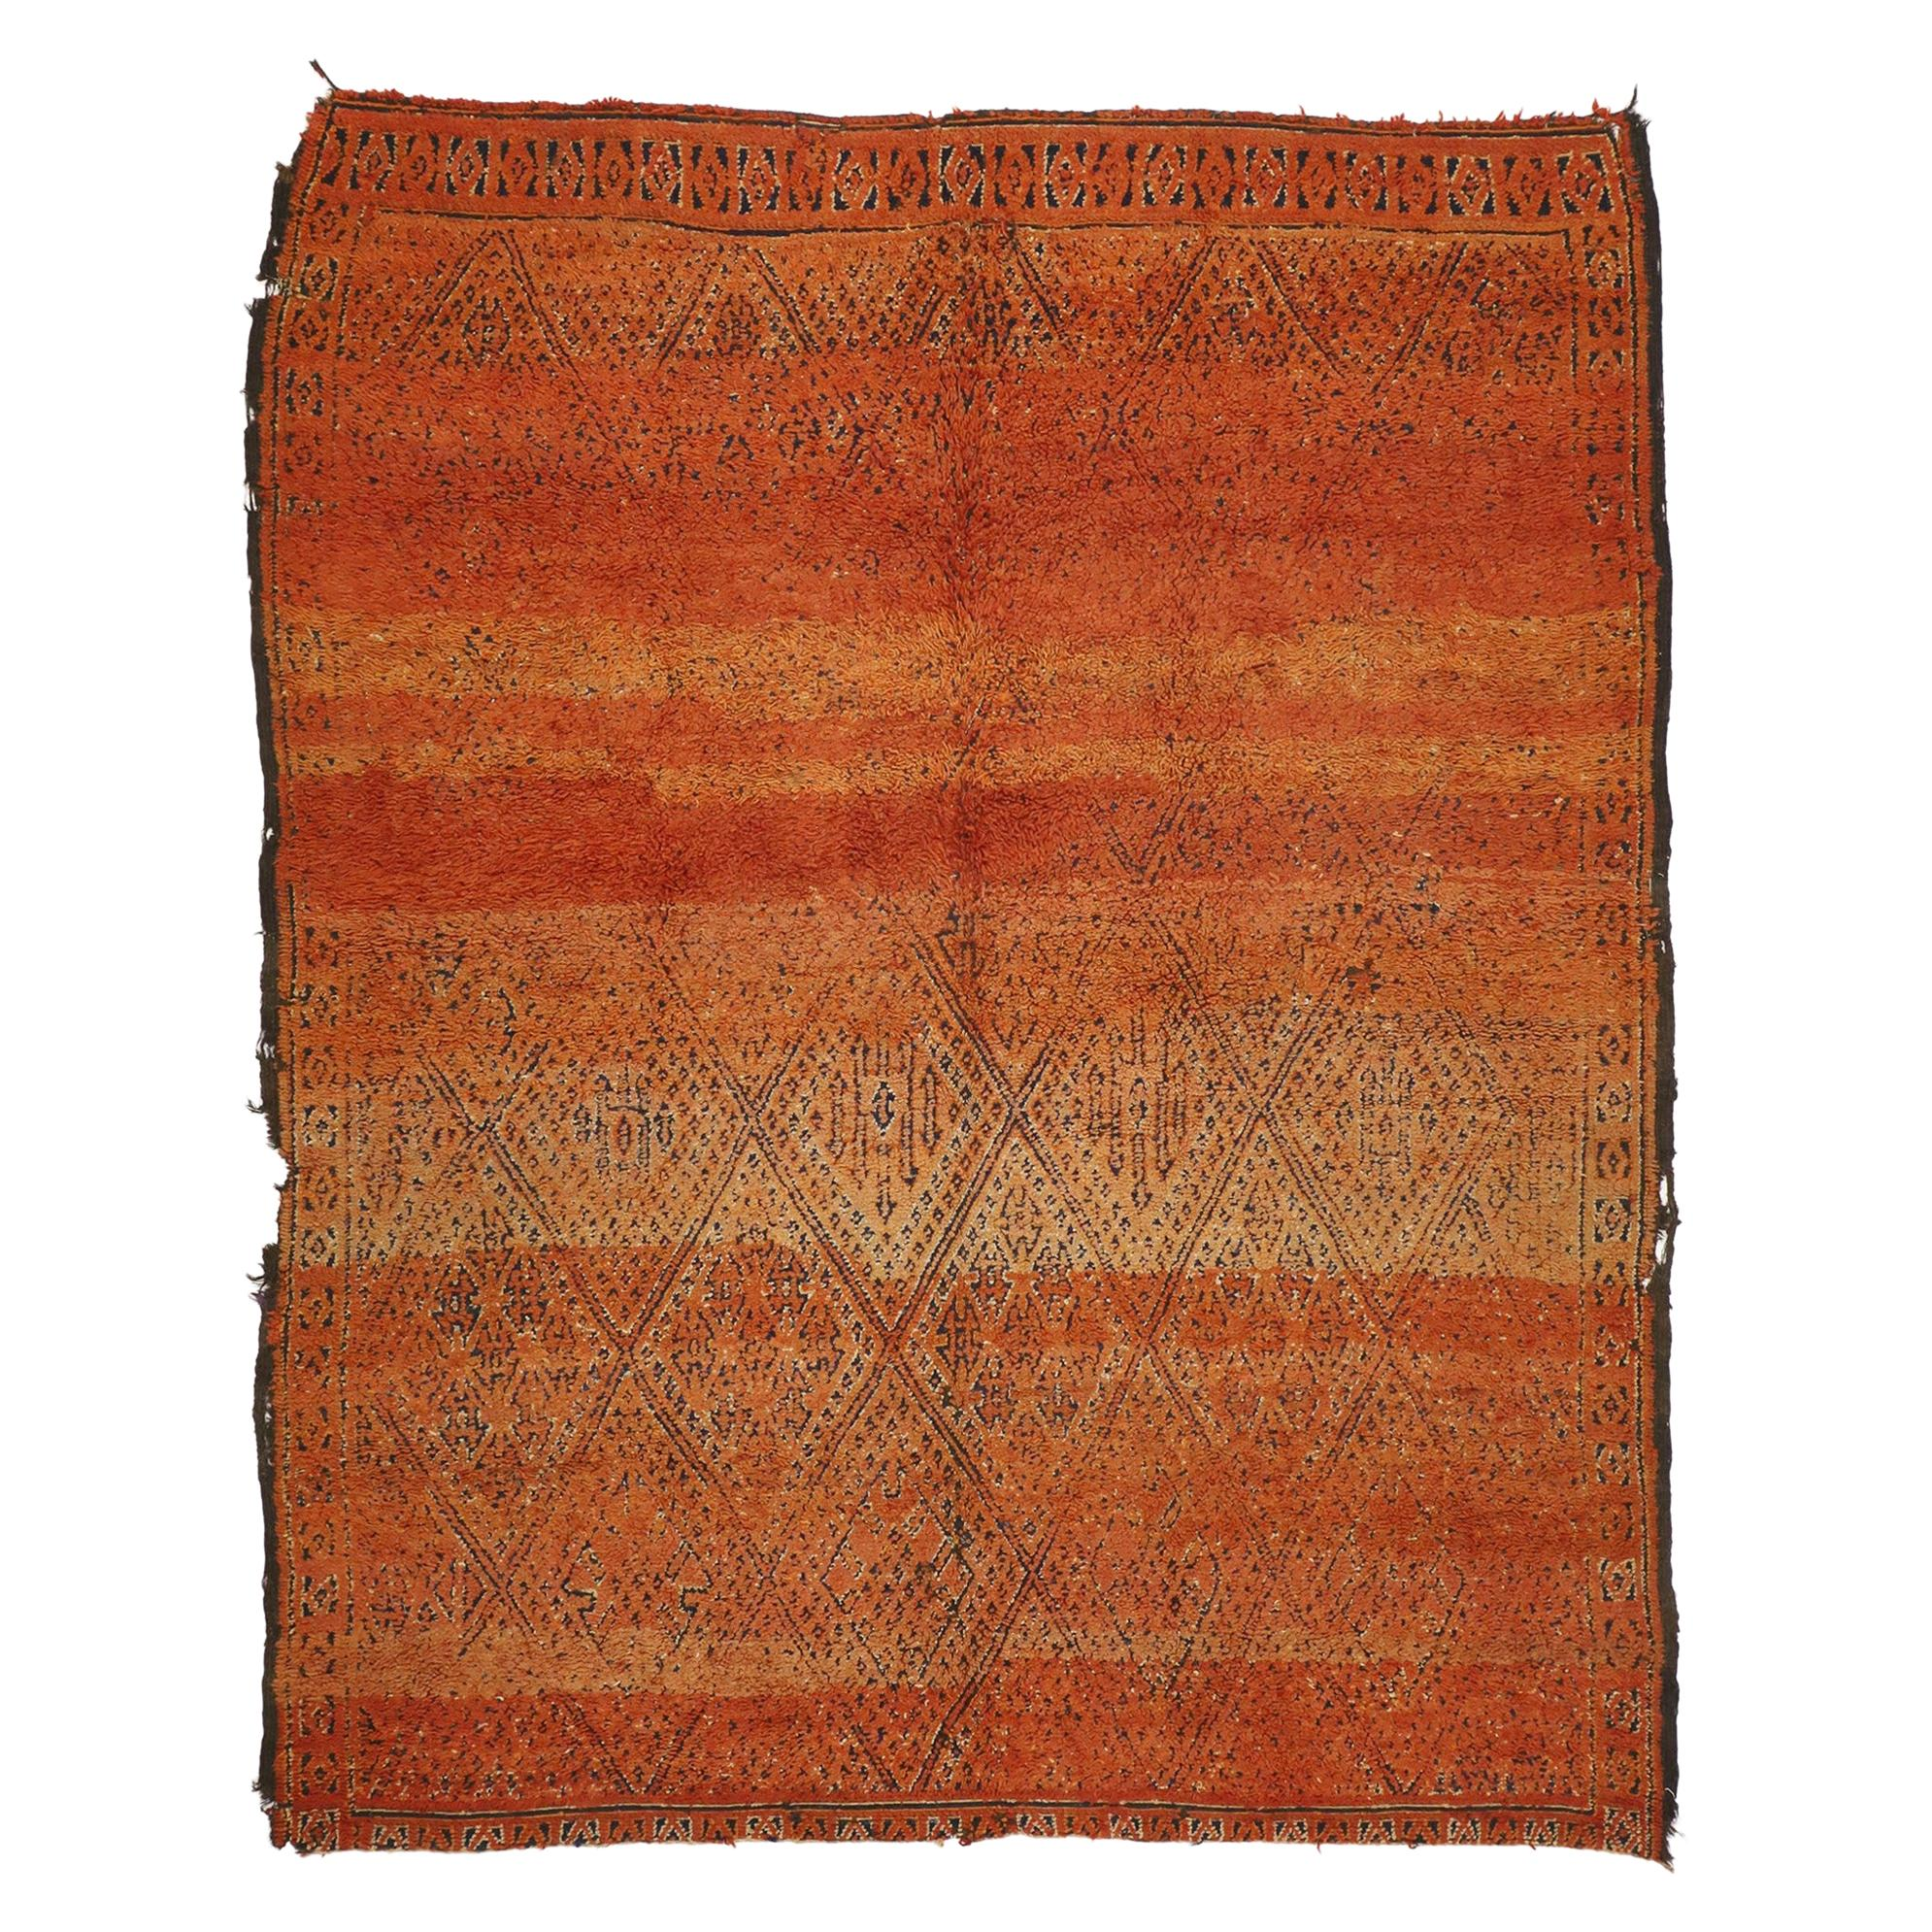 Vintage Berber Moroccan Zayane Rug with Rustic Modern and Northwestern Style